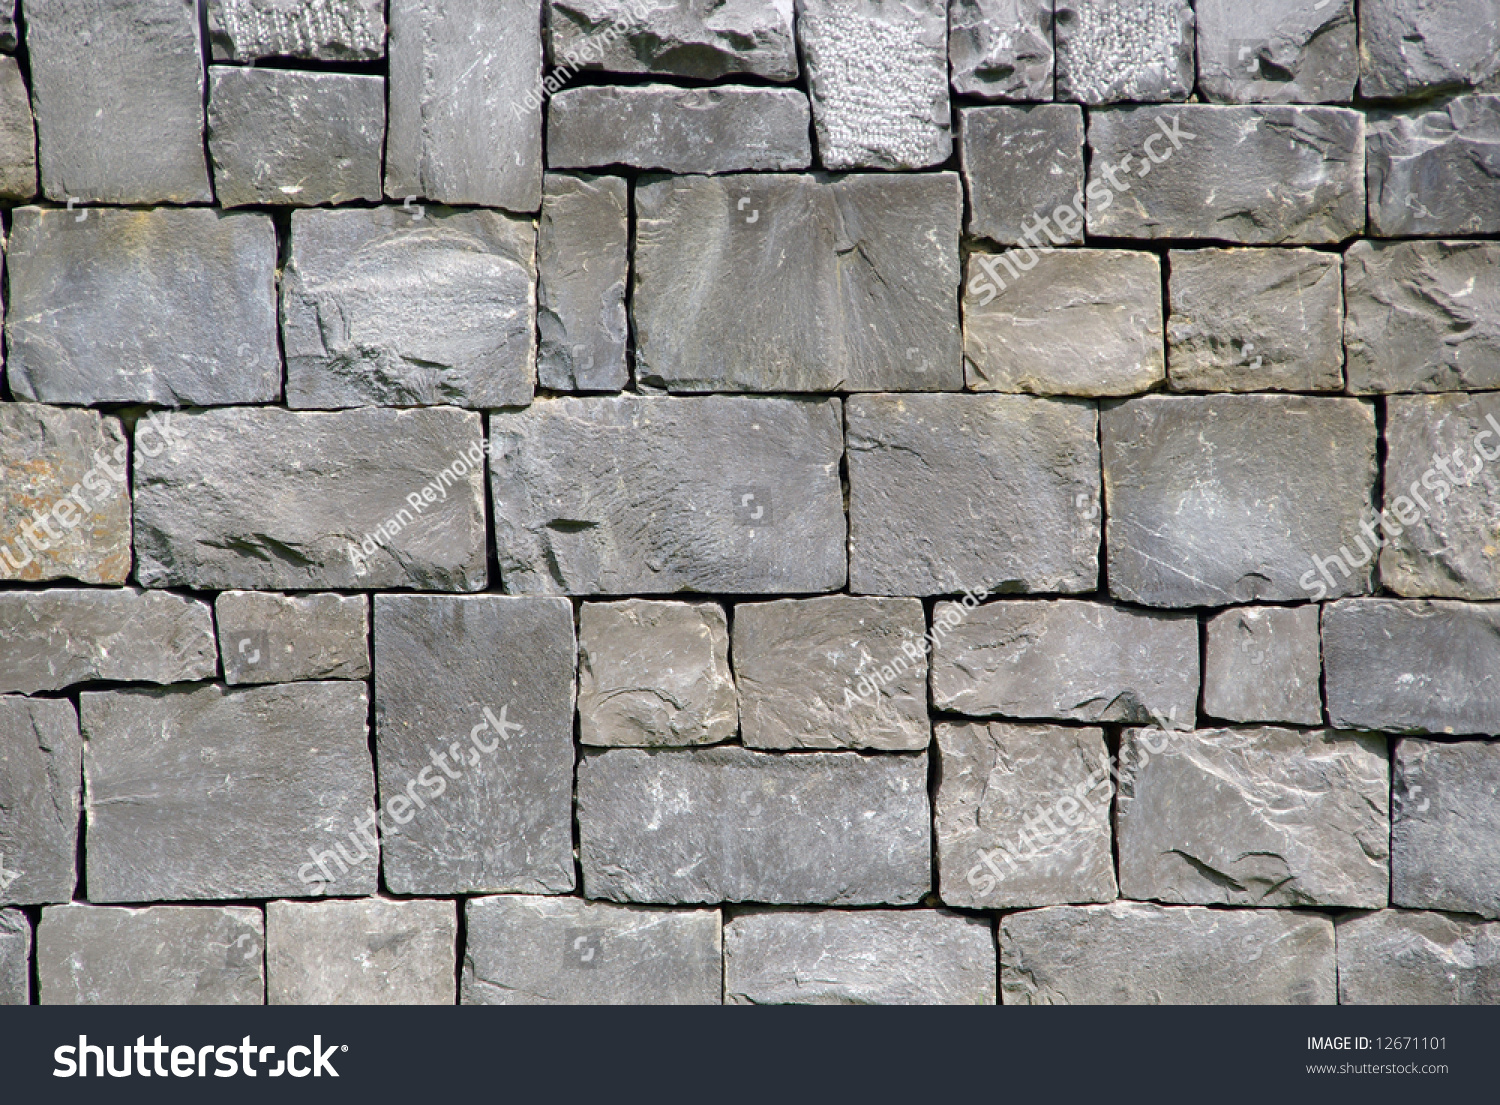 Cut Sandstone Blocks : Natural stone dressed cut into building lagerfoto